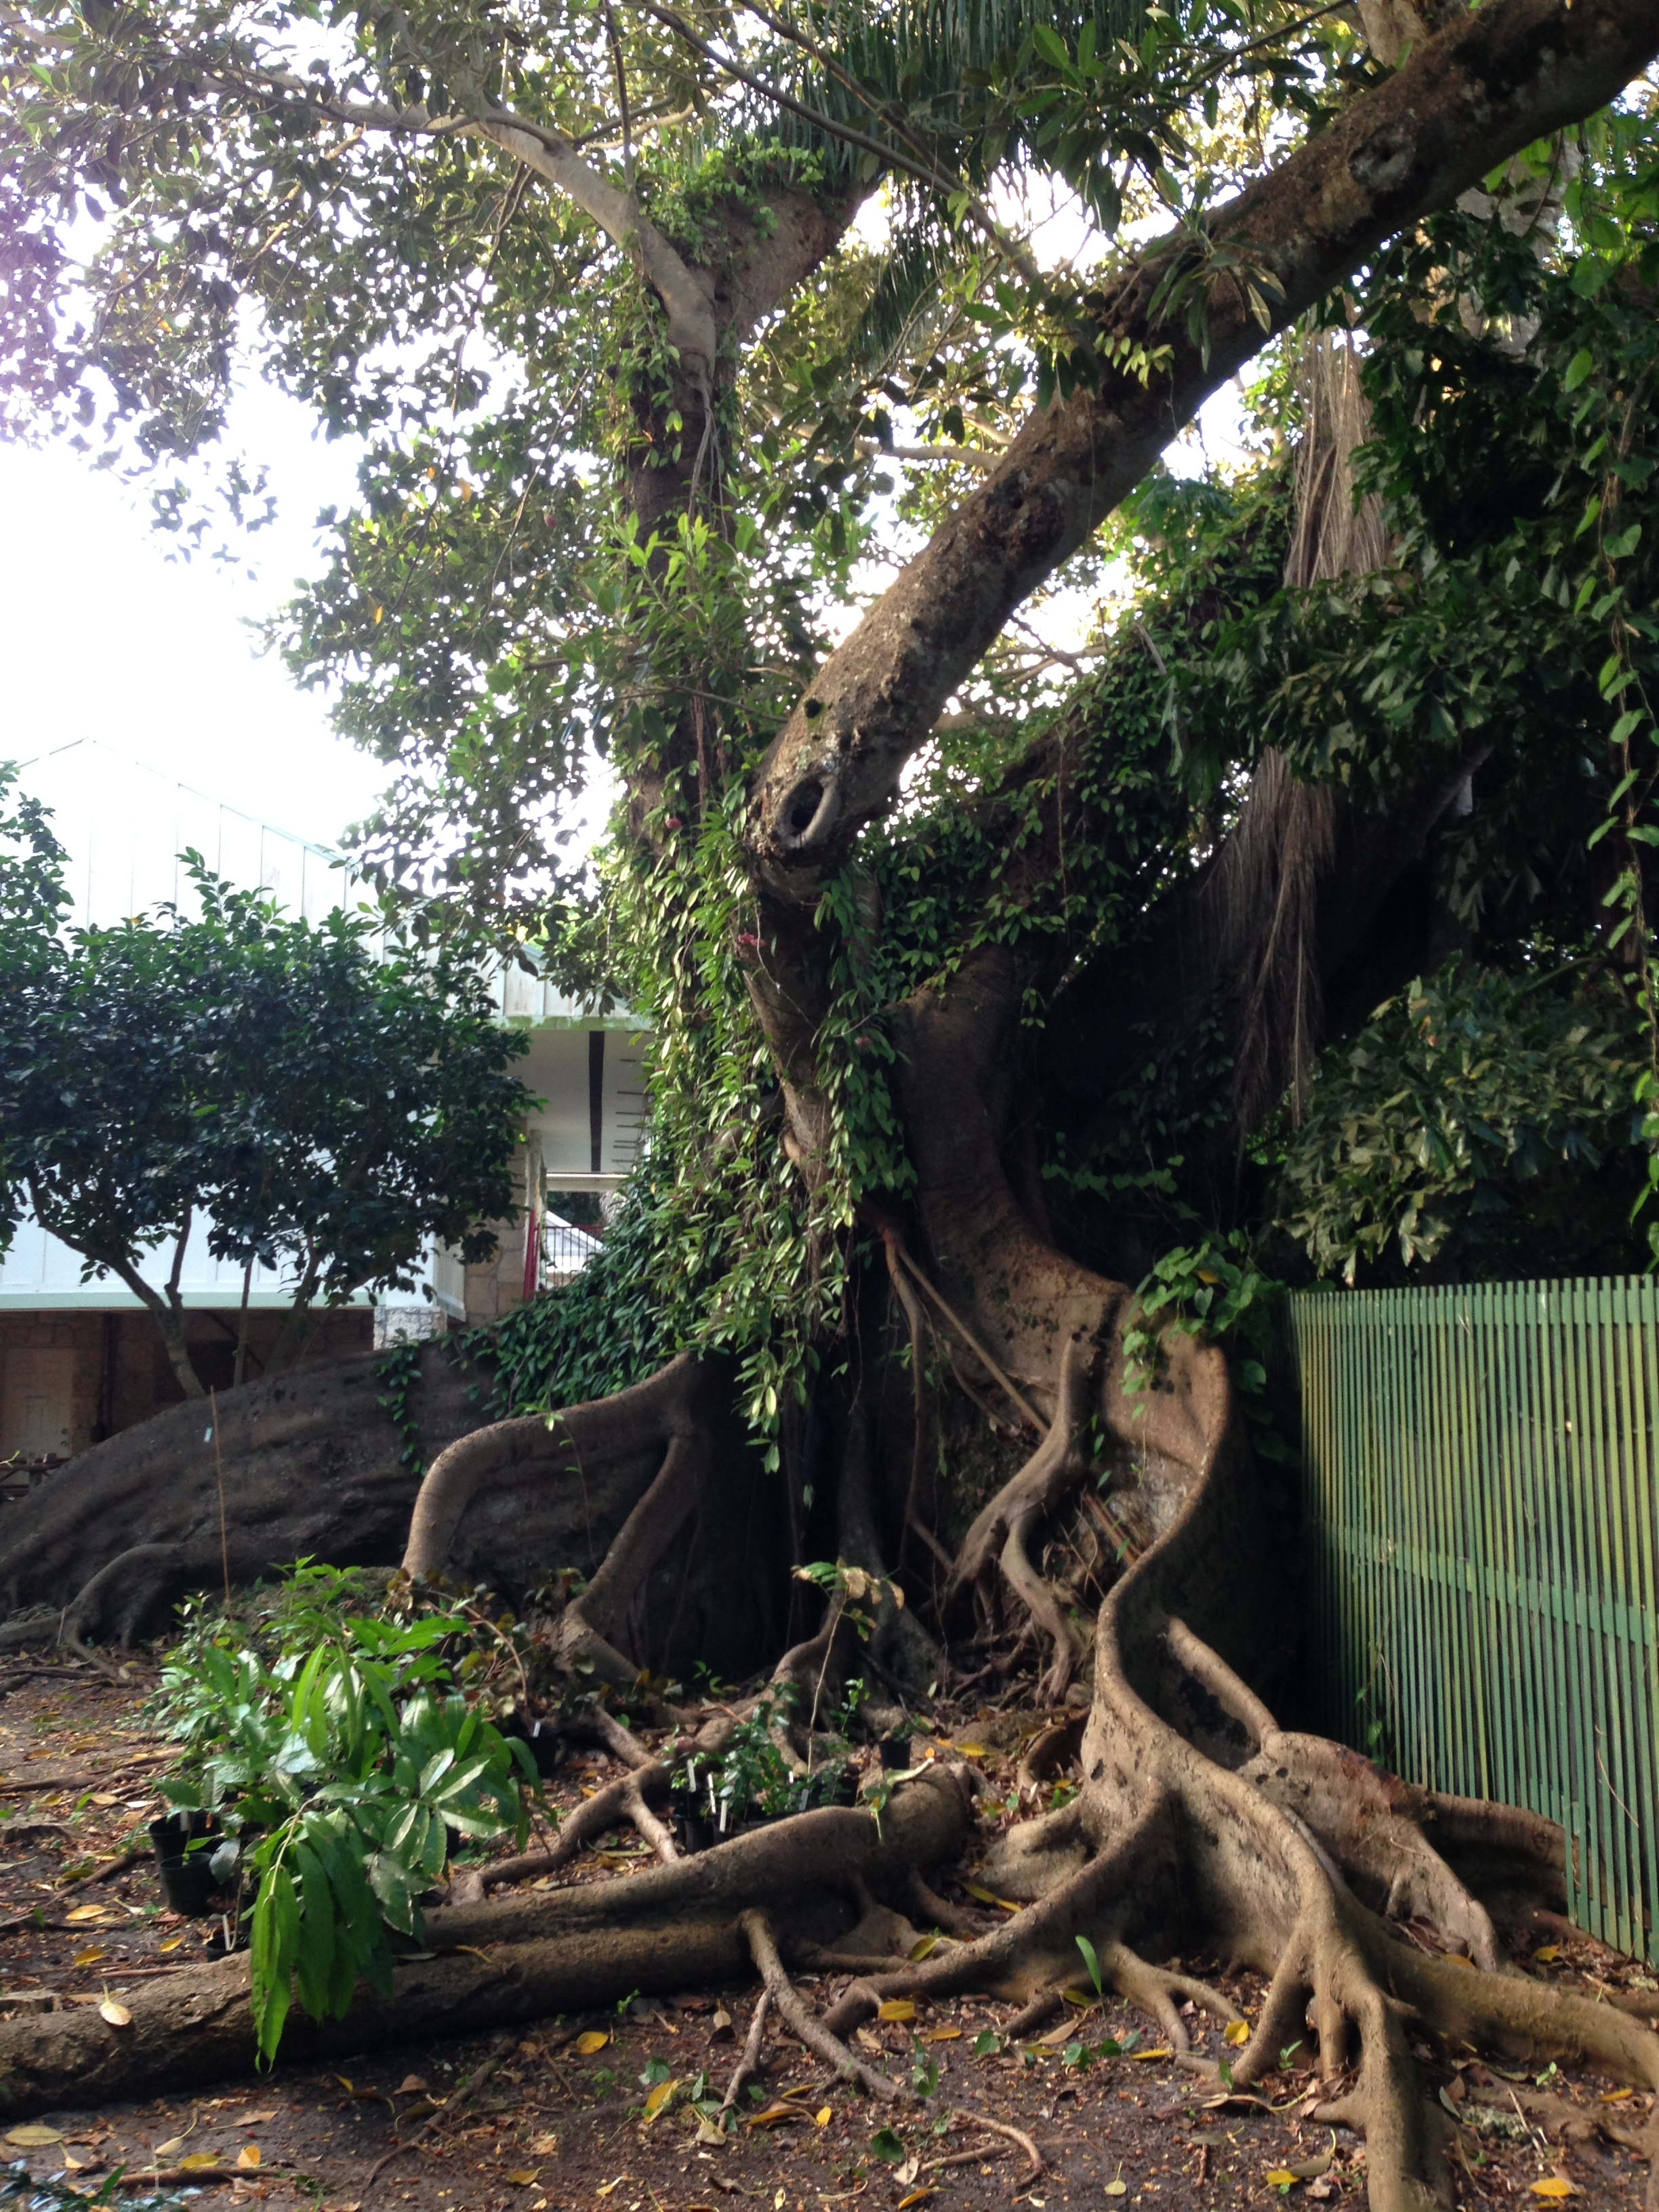 Amazing root systems from the old trees around the Kampong